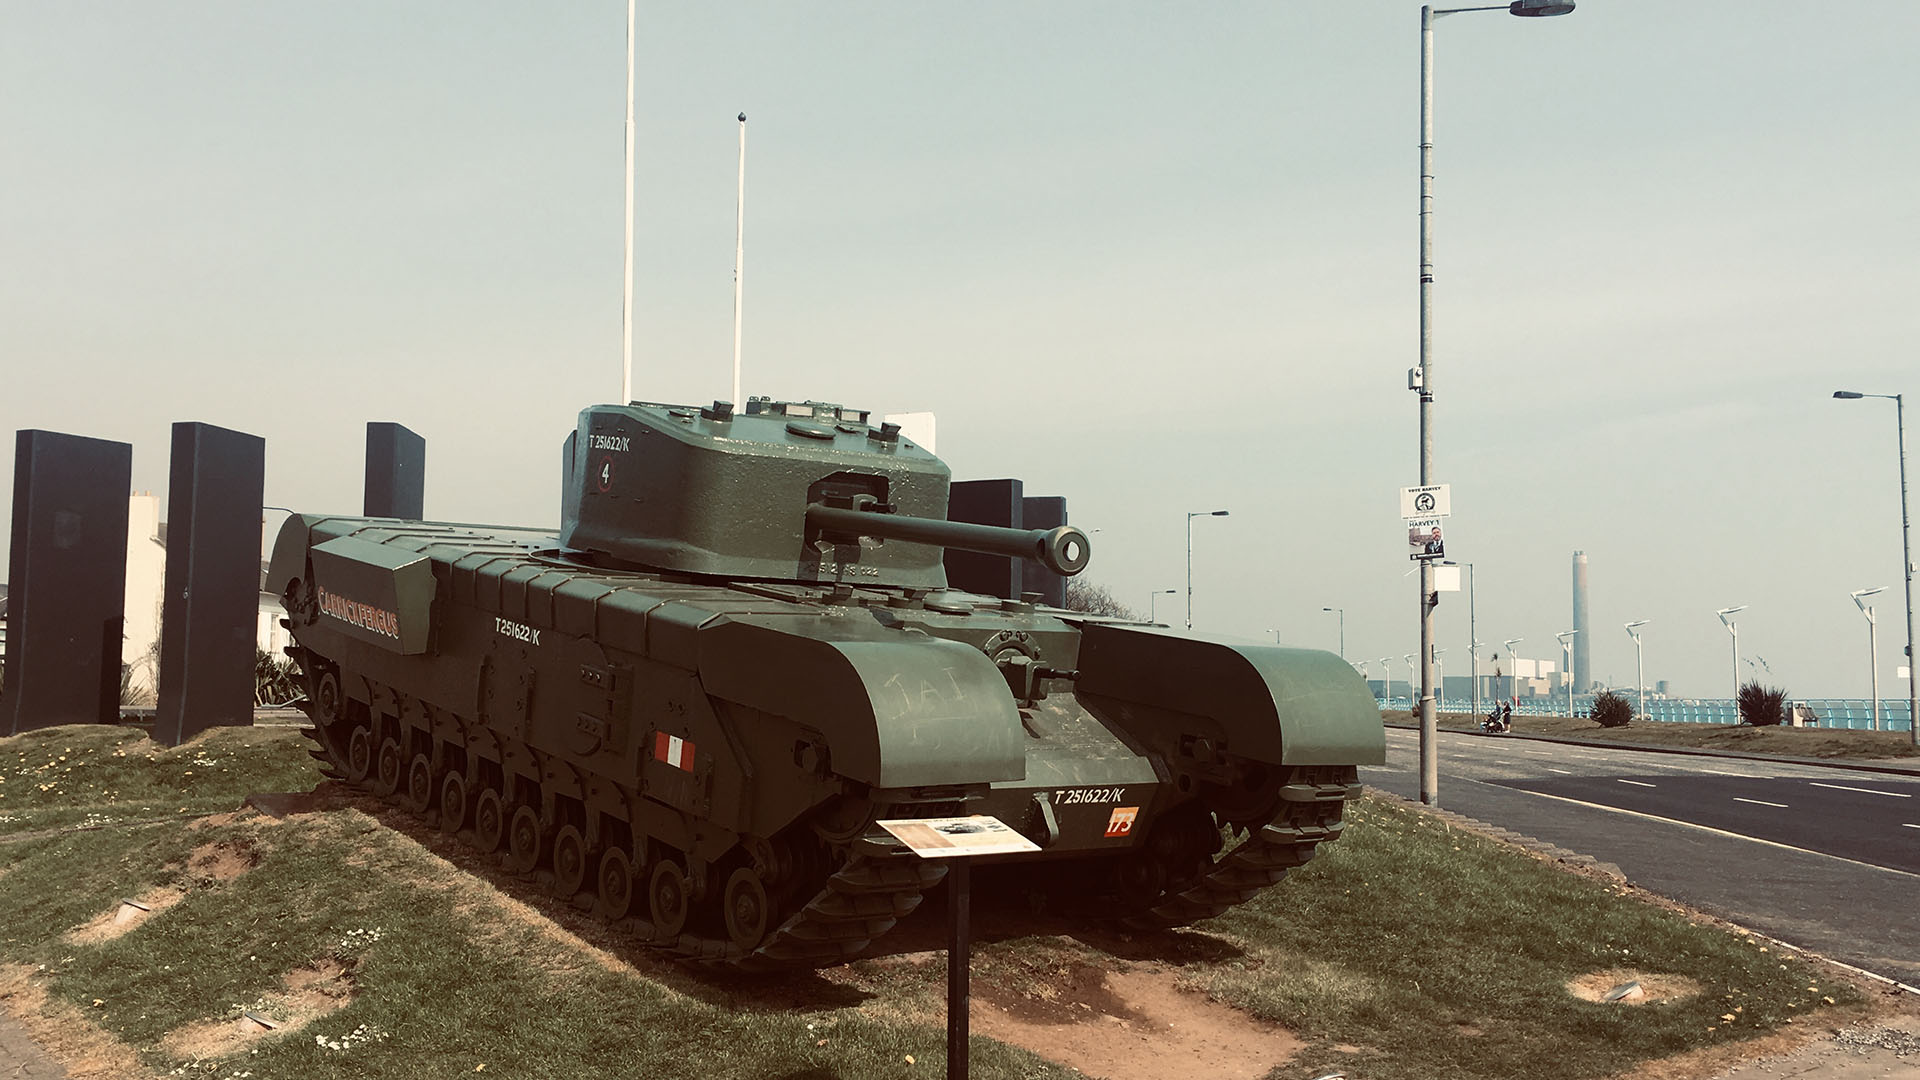 The Carrickfergus Churchill Tank